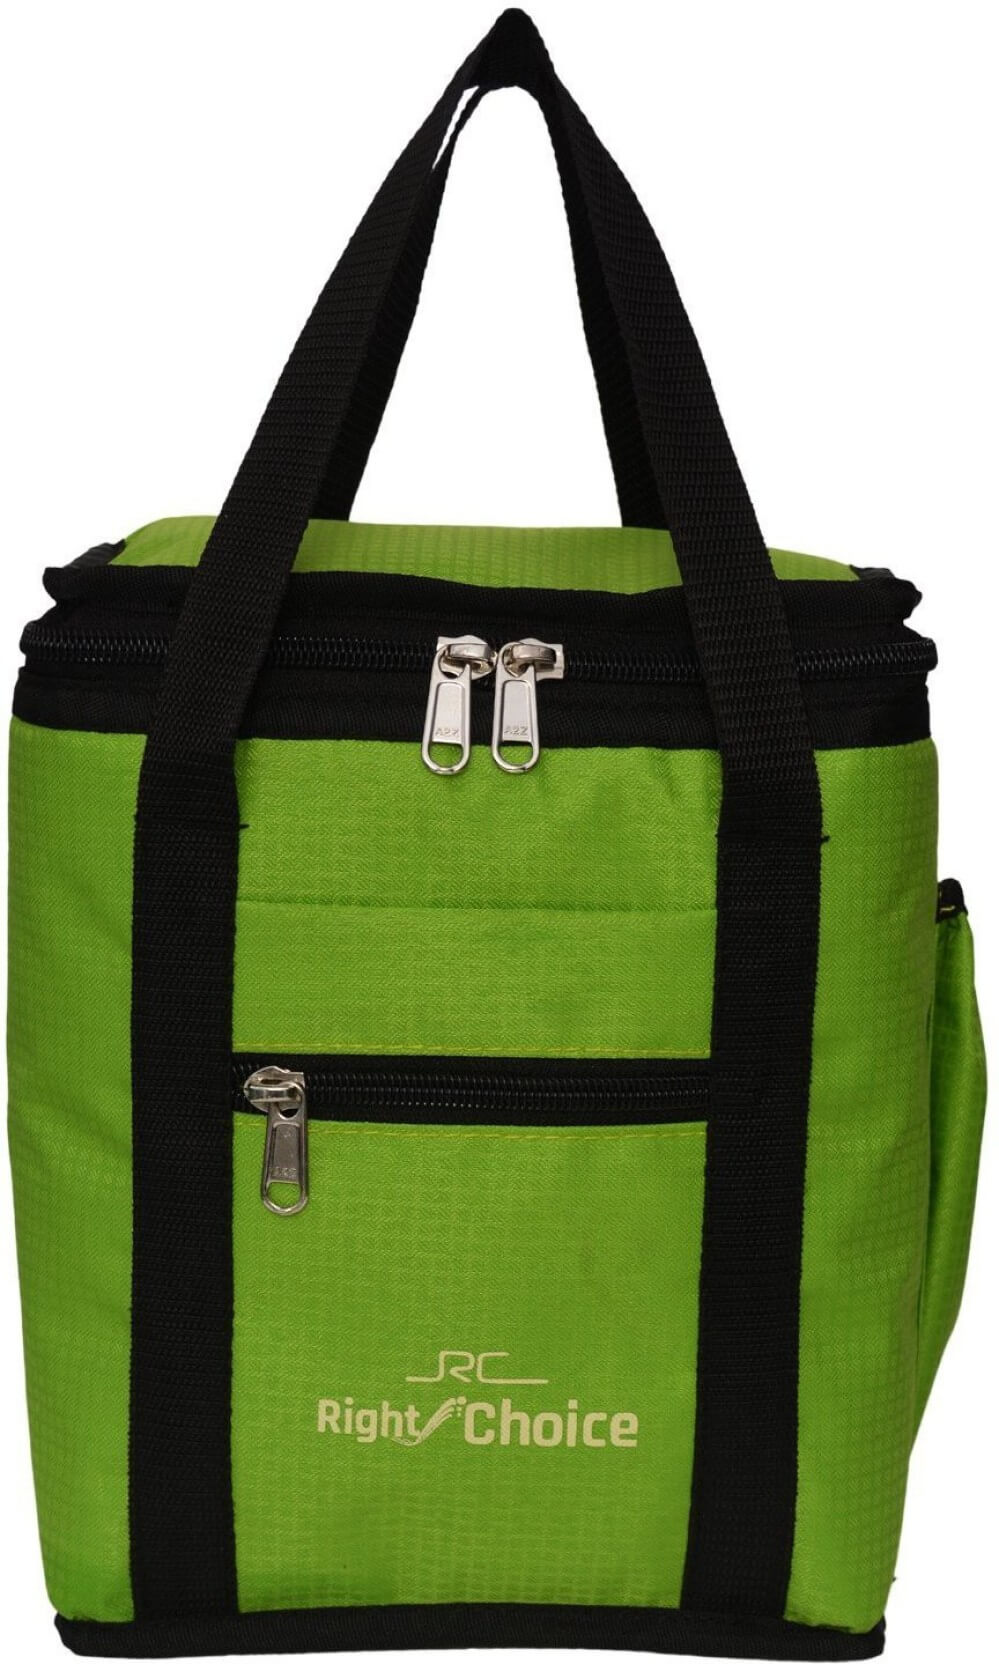 Right Choice Lunch Bag  (Light Green, Green, 10 inch)